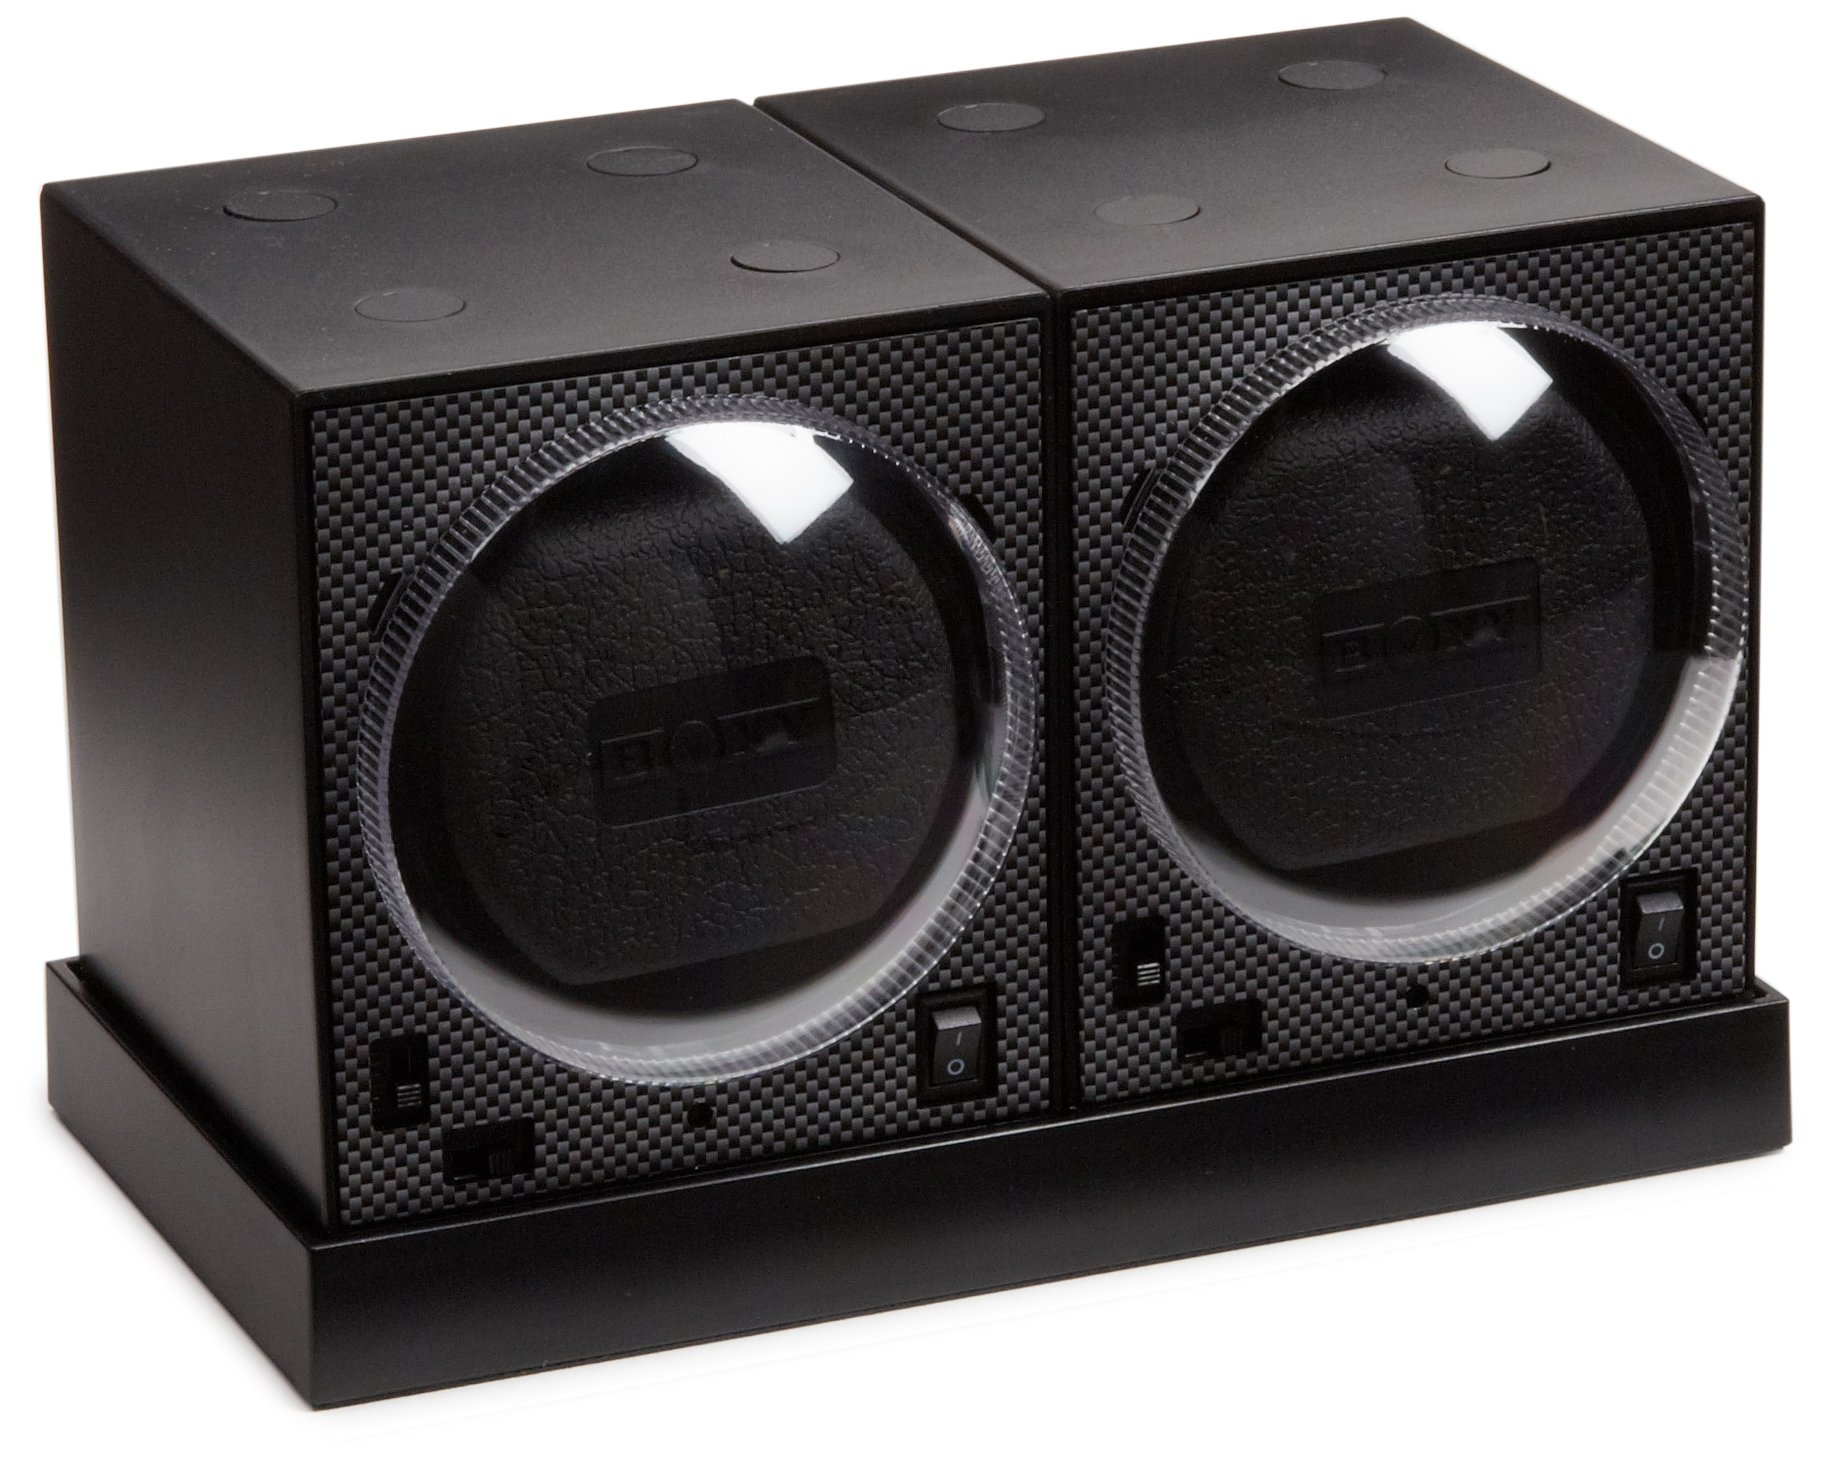 Diplomat 31-403-02S Boxy Double Power Station Watch Winder